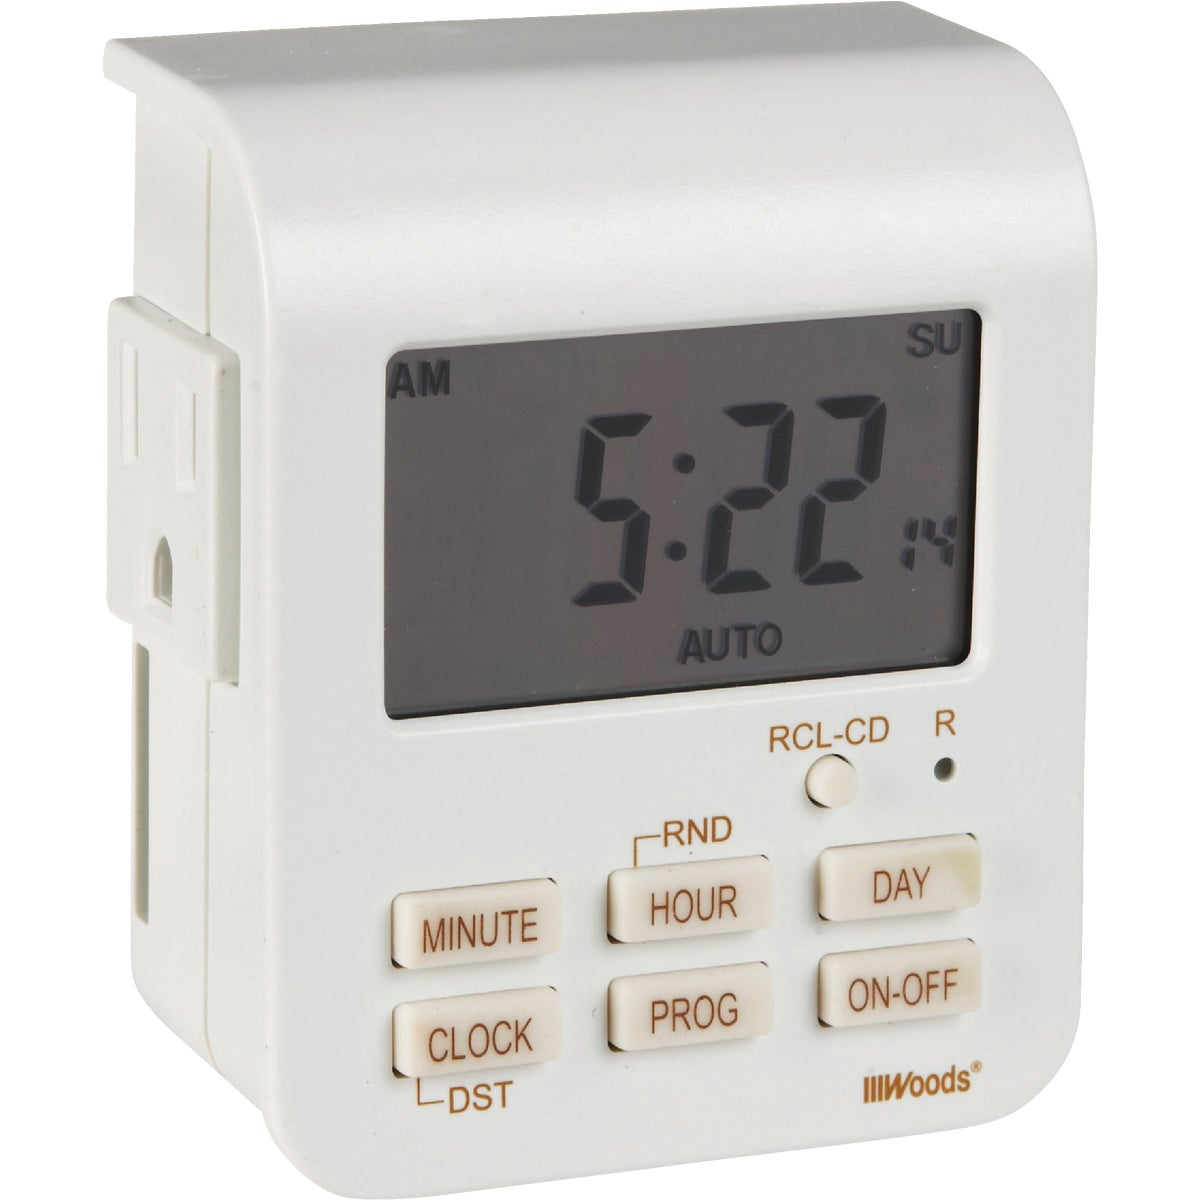 7-HR DIGITAL TIMER